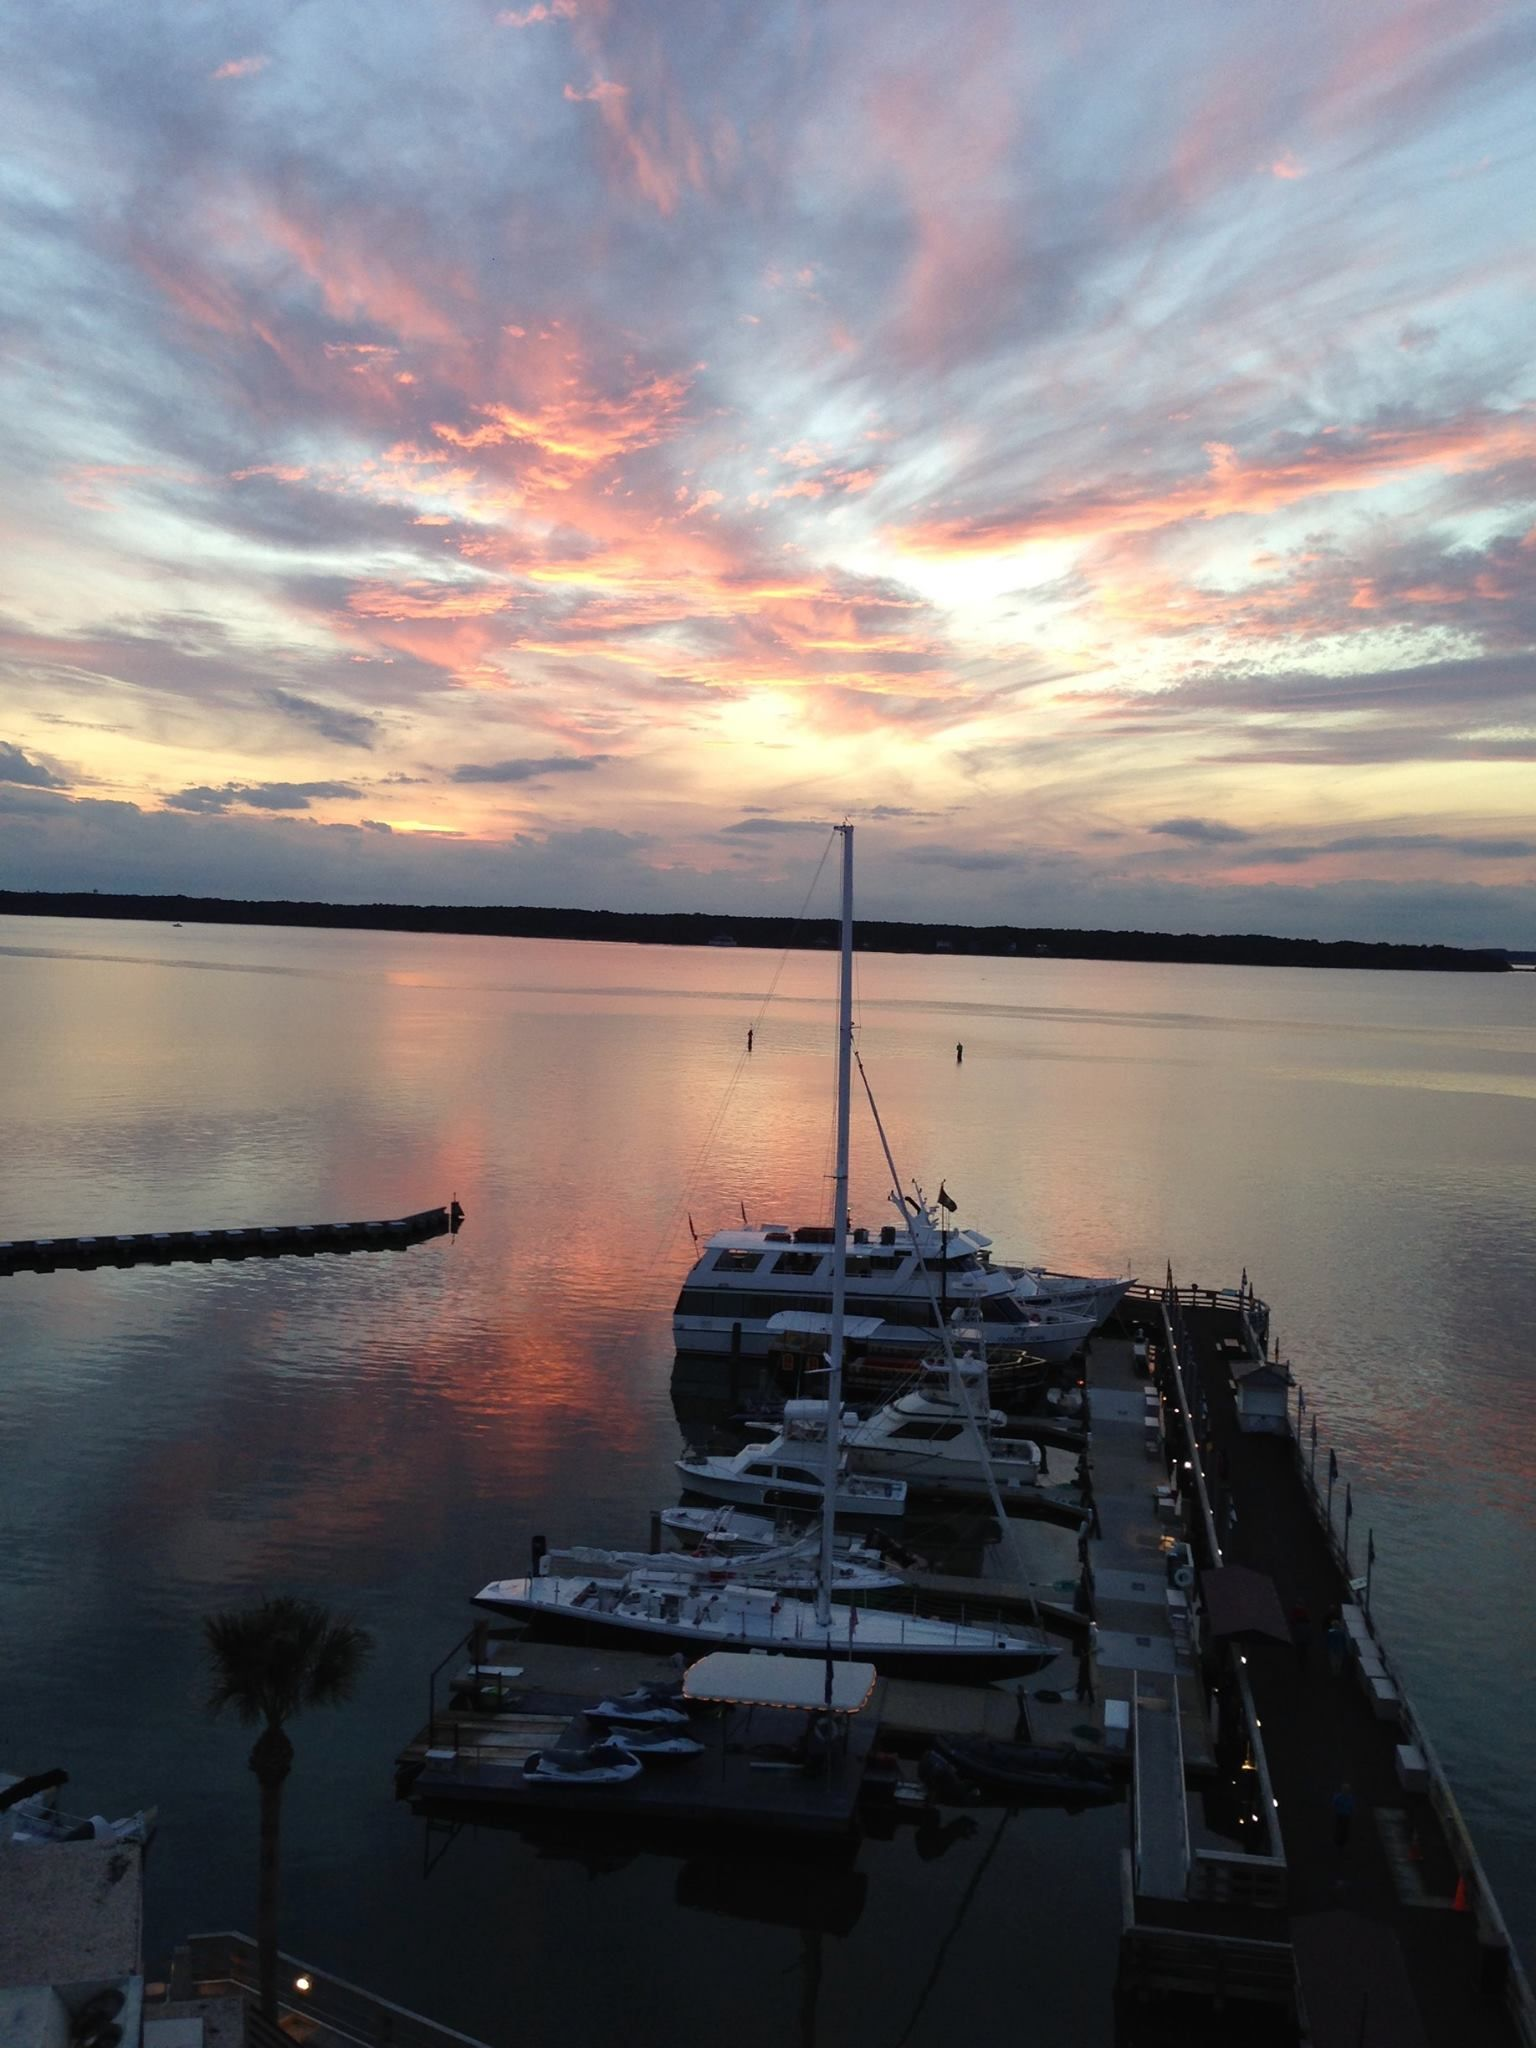 hilton head island south carolina is a great place for people who